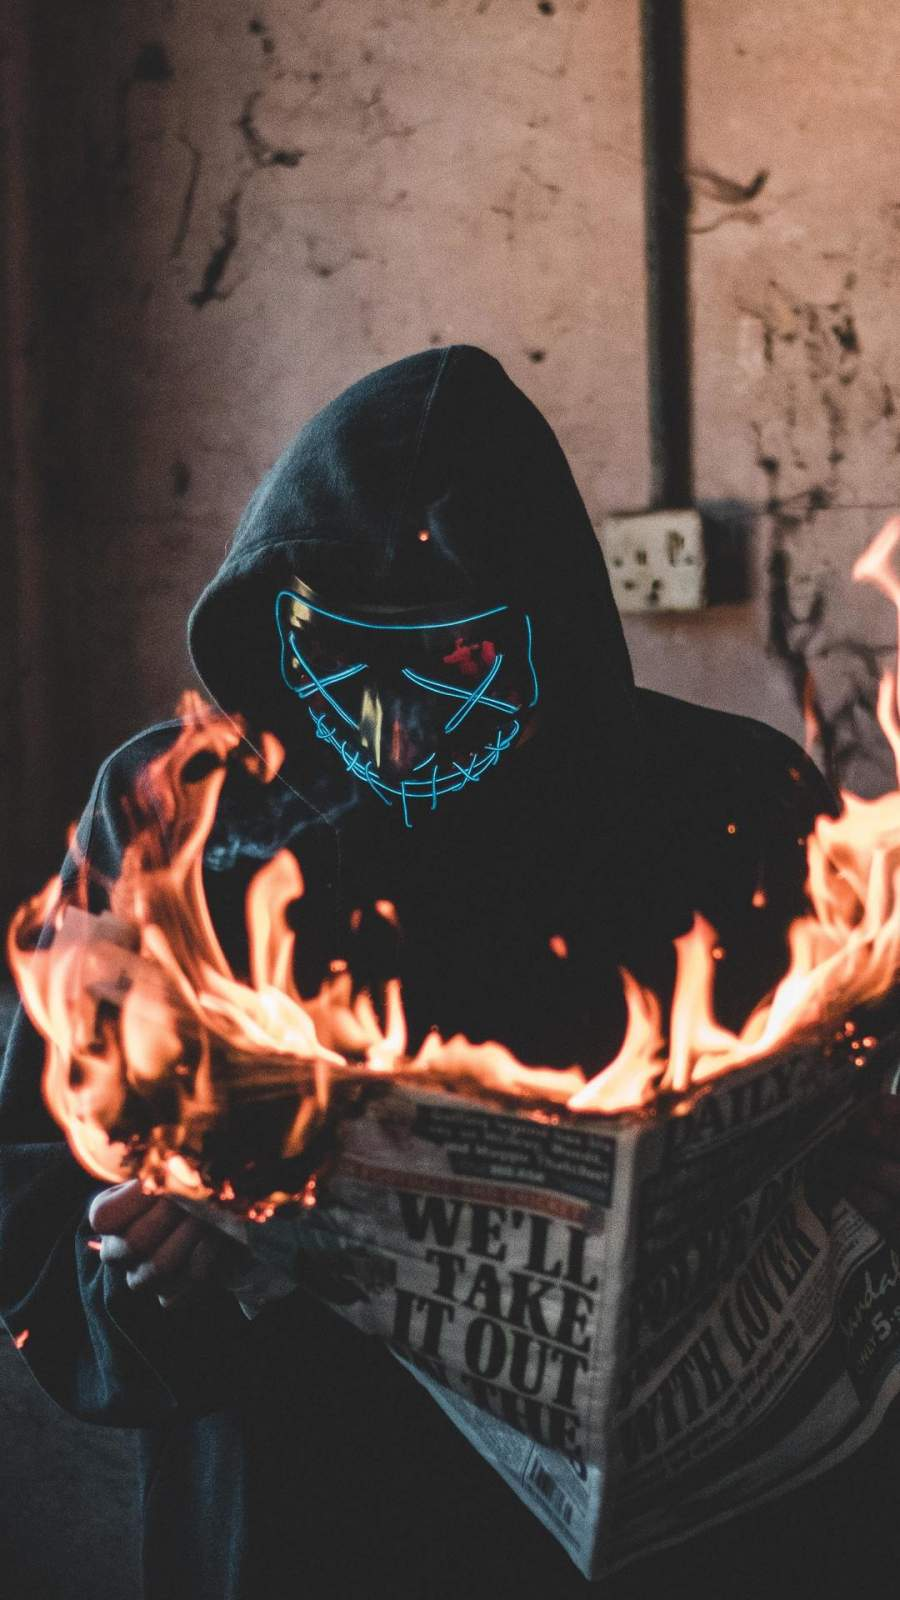 Hidden Mask Guy Burning Newspaper iPhone Wallpaper